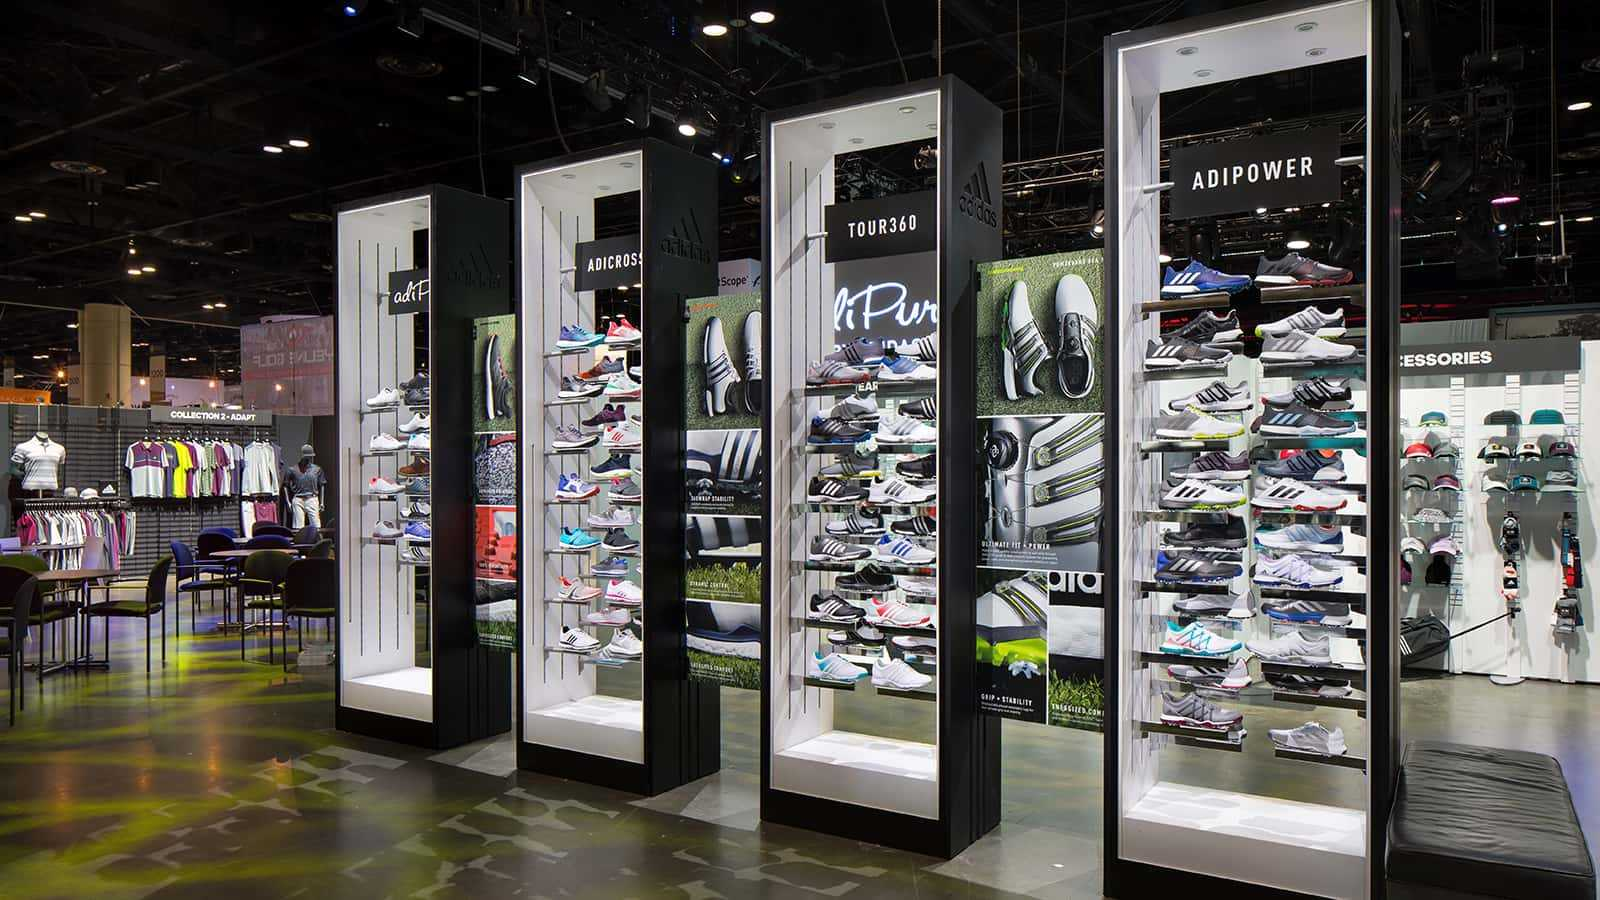 Footwear display at the adidas Golf PGA Merchandise Show 2017 experience.